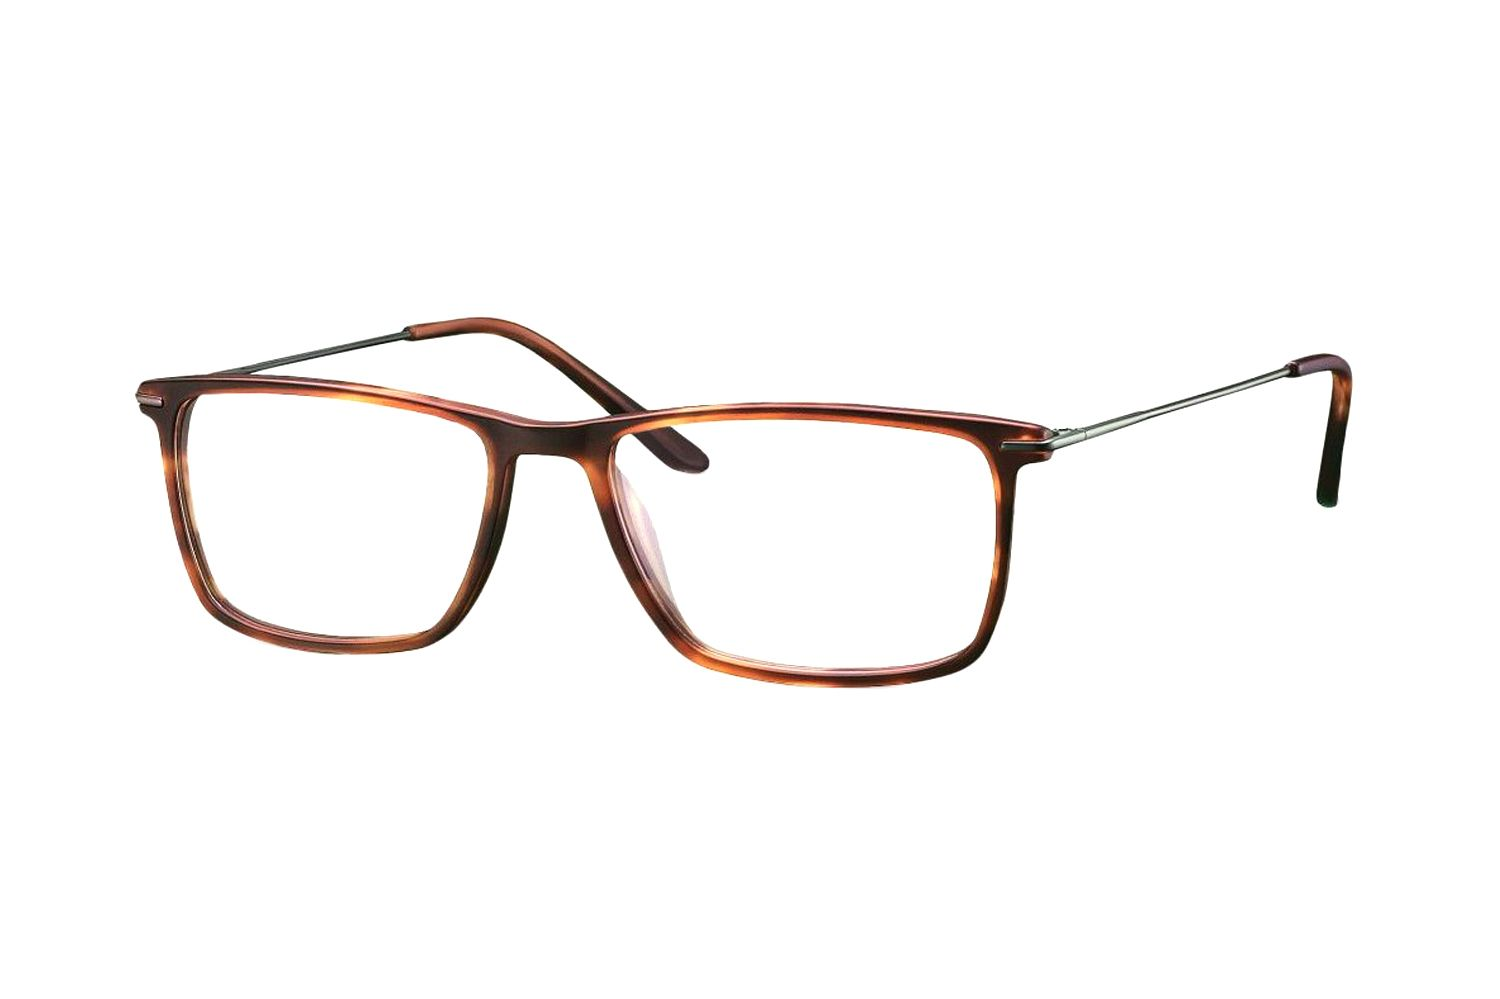 Marc O Polo 503075 60 Brille In Hellhavanna In 2020 Marc O Polo Brille Marc O Polo Und Brille